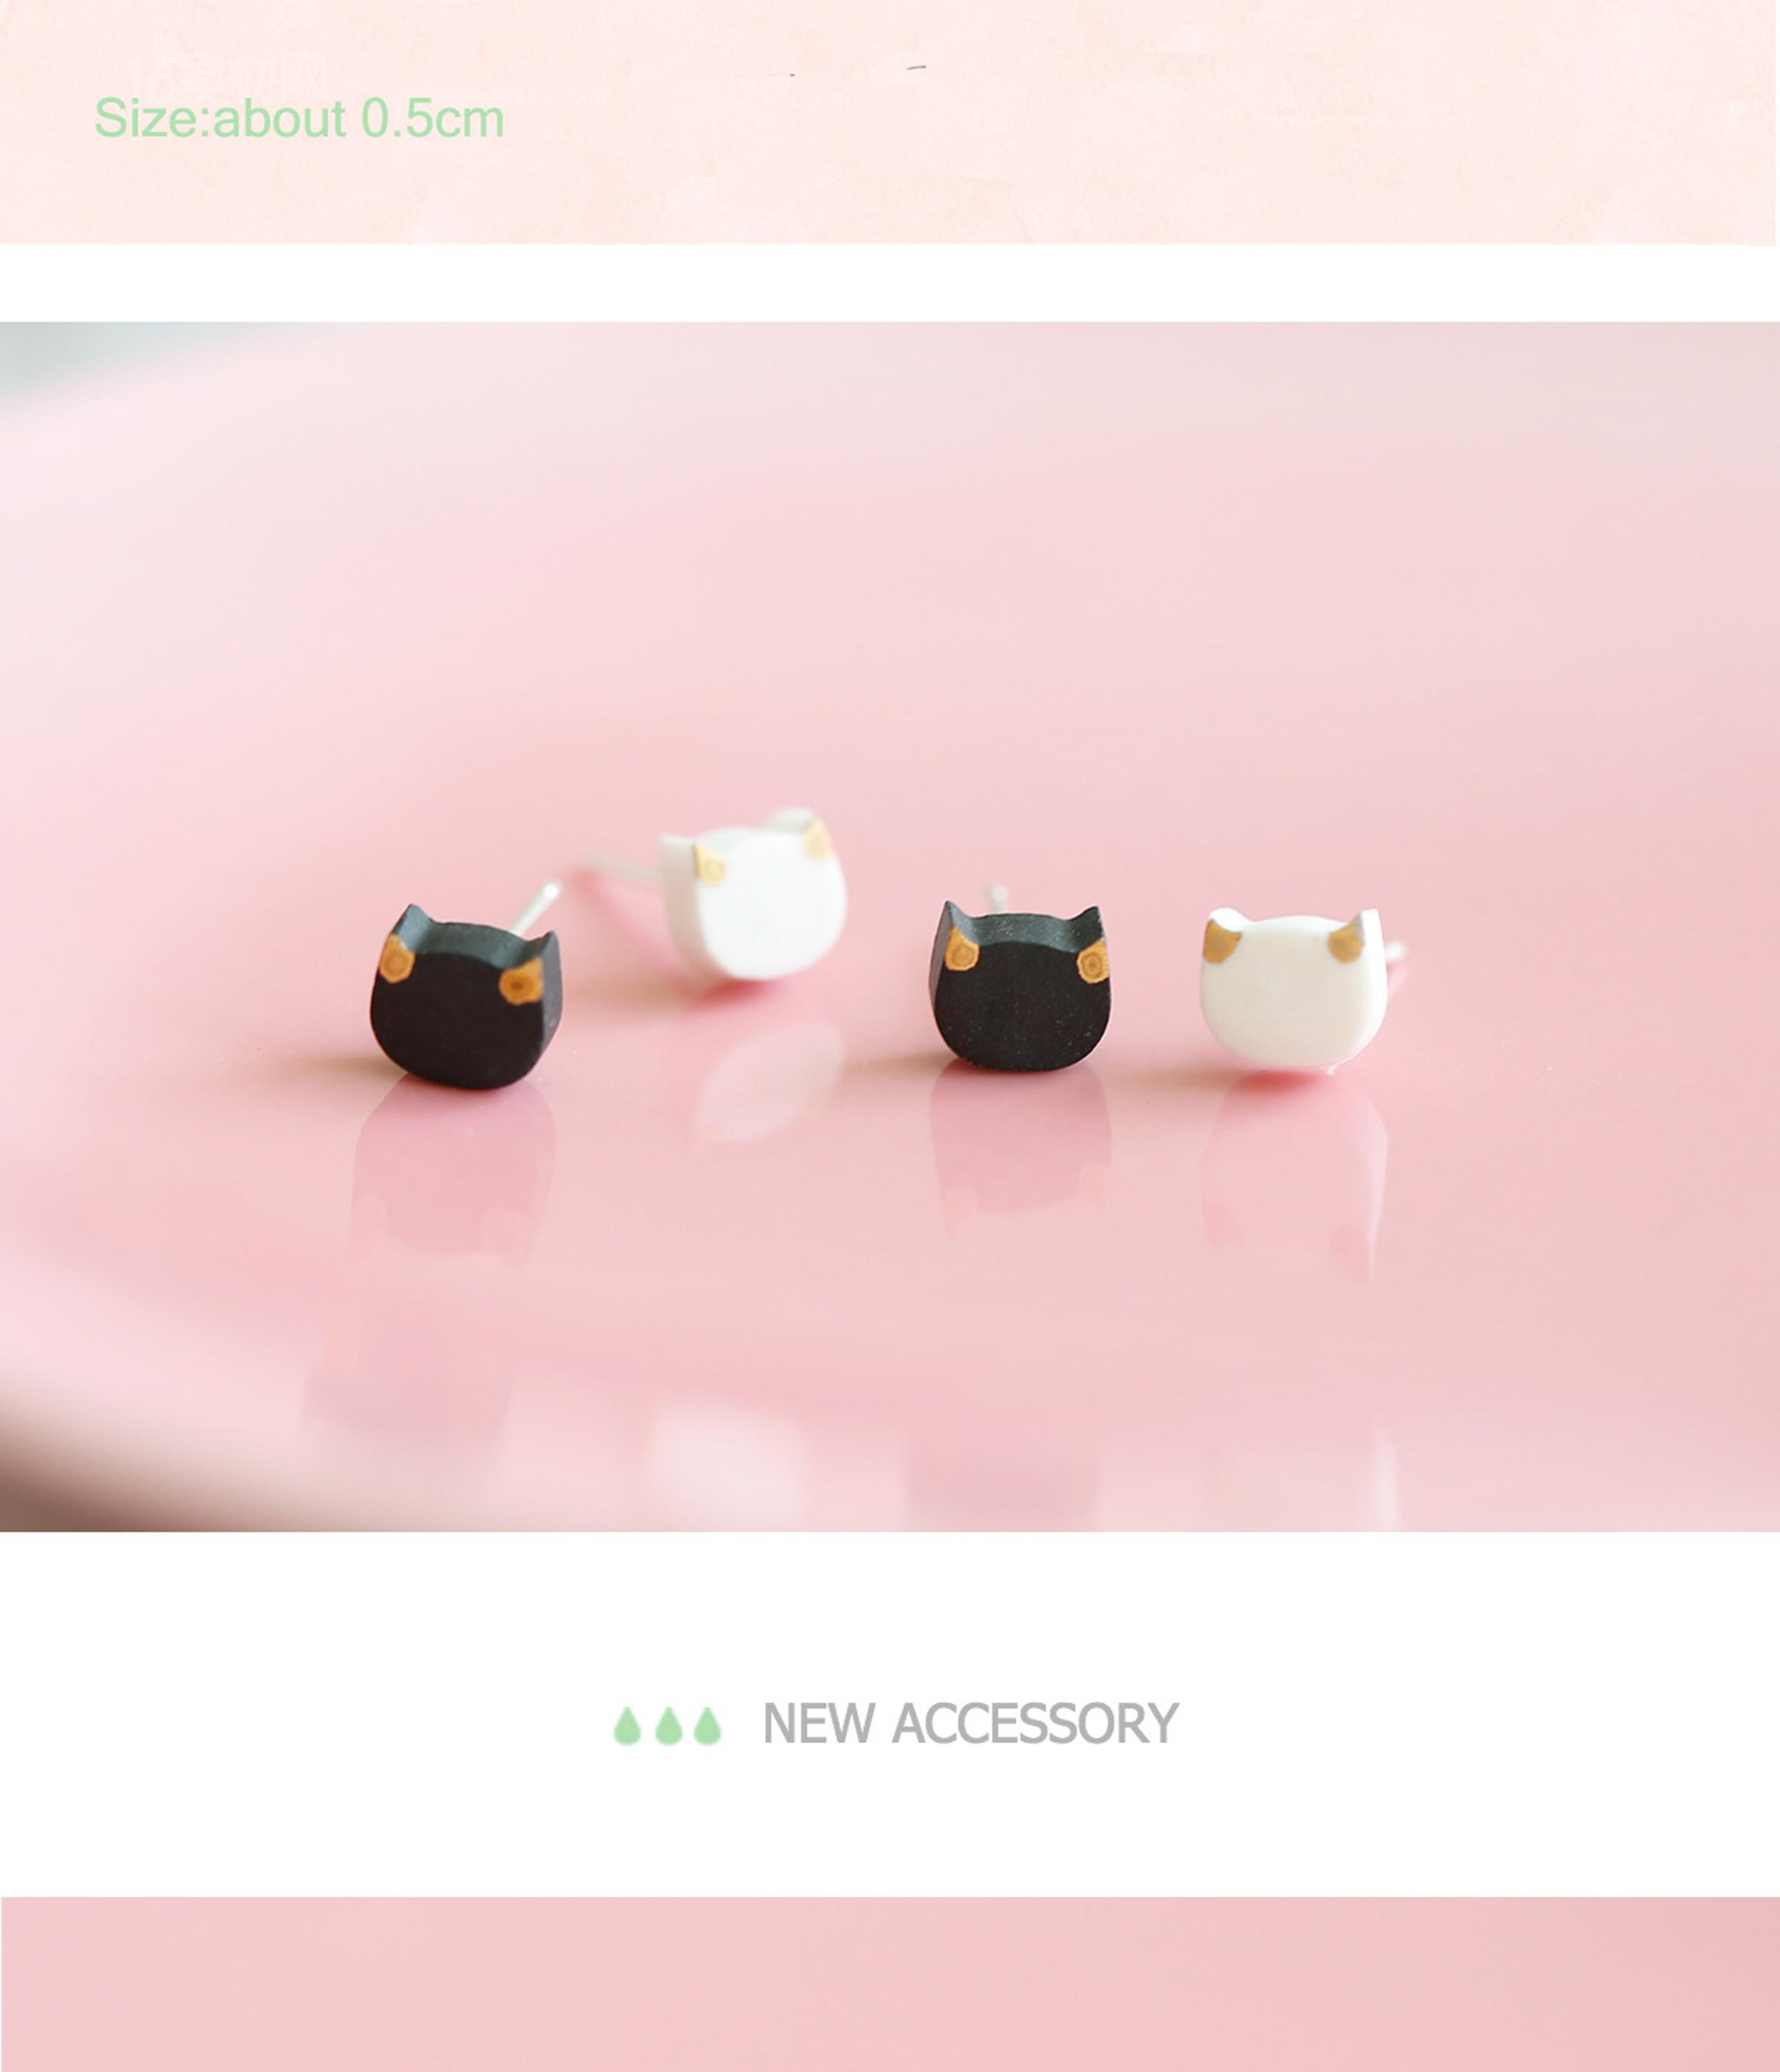 cat earrings ear stud earrings new product fashion accessory latest girls earrings stud wholesale free sample